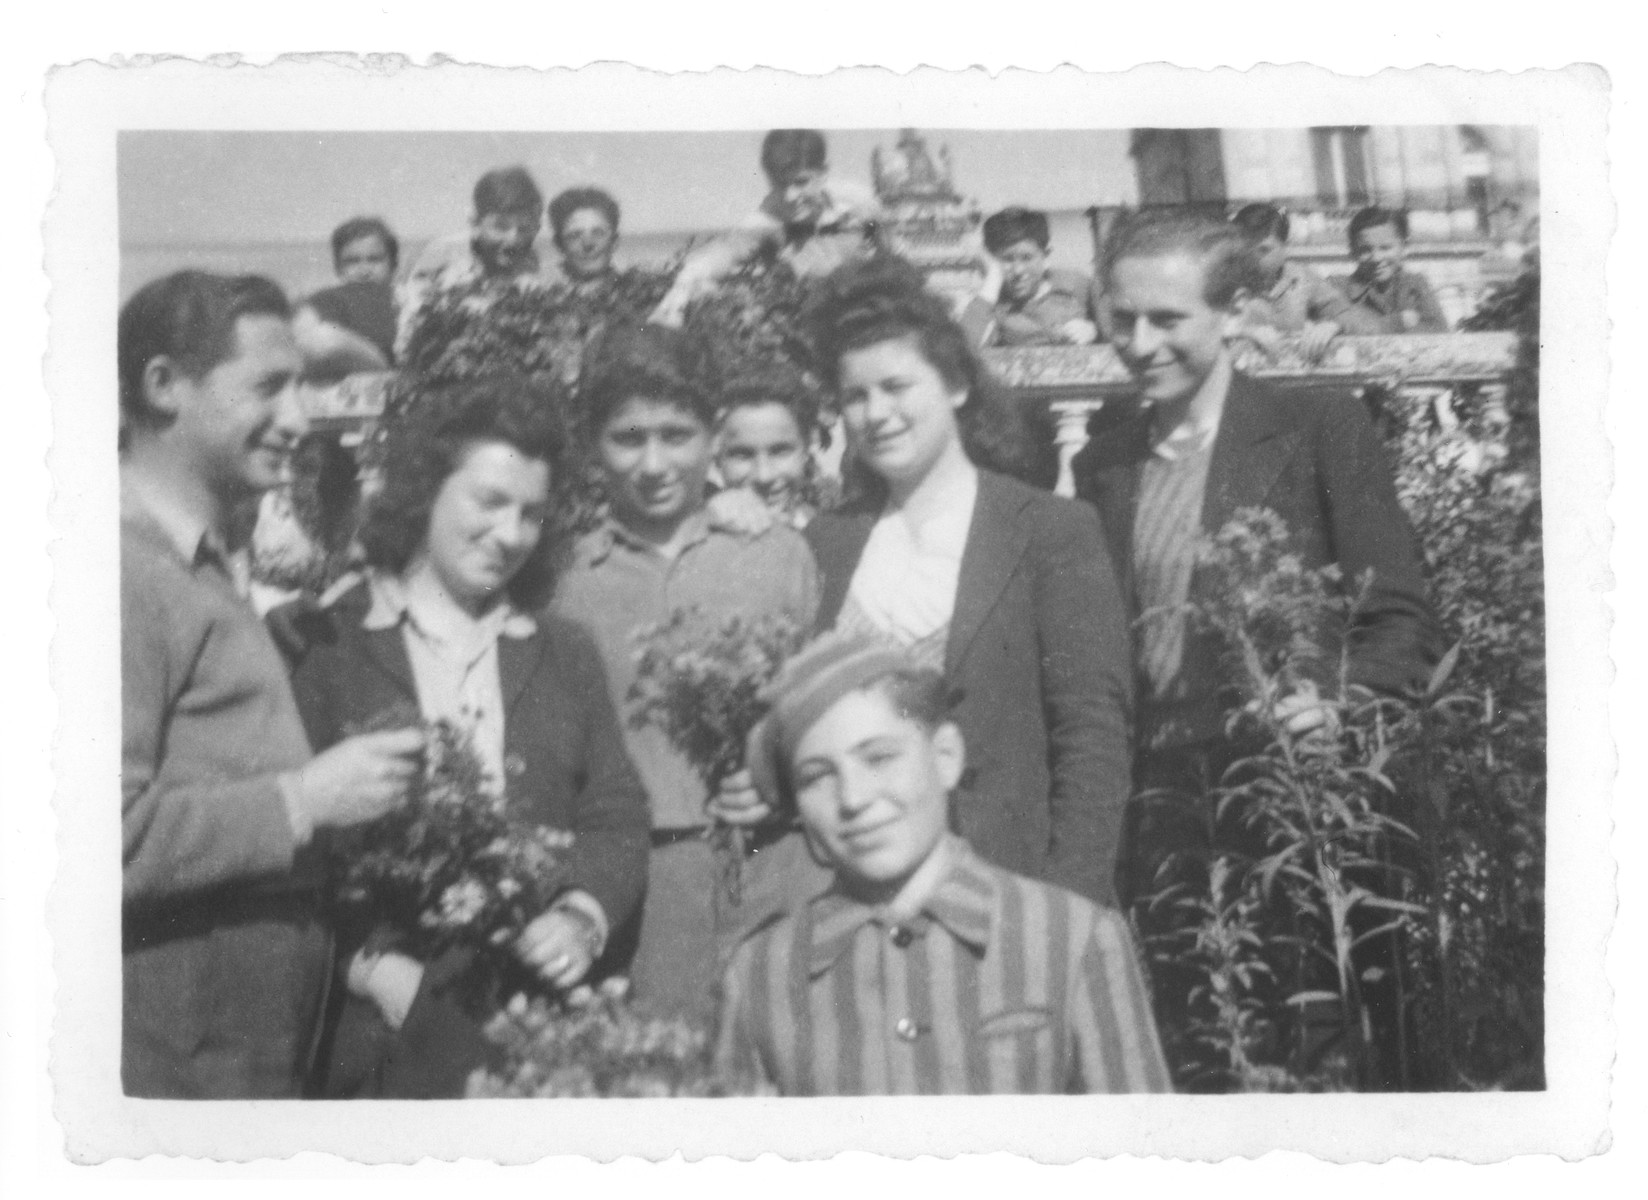 Members of the Buchenwald children's transport, one of whom is wearing a camp uniform, pose in the garden of the Ecouis children's home.  Among those pictured is Albert Dymant (far left); Jusek [Dishour] far right; Ivar Segalowitz (in the background, second from the left); and Léon Frydman (center between the two women, holding flowers).